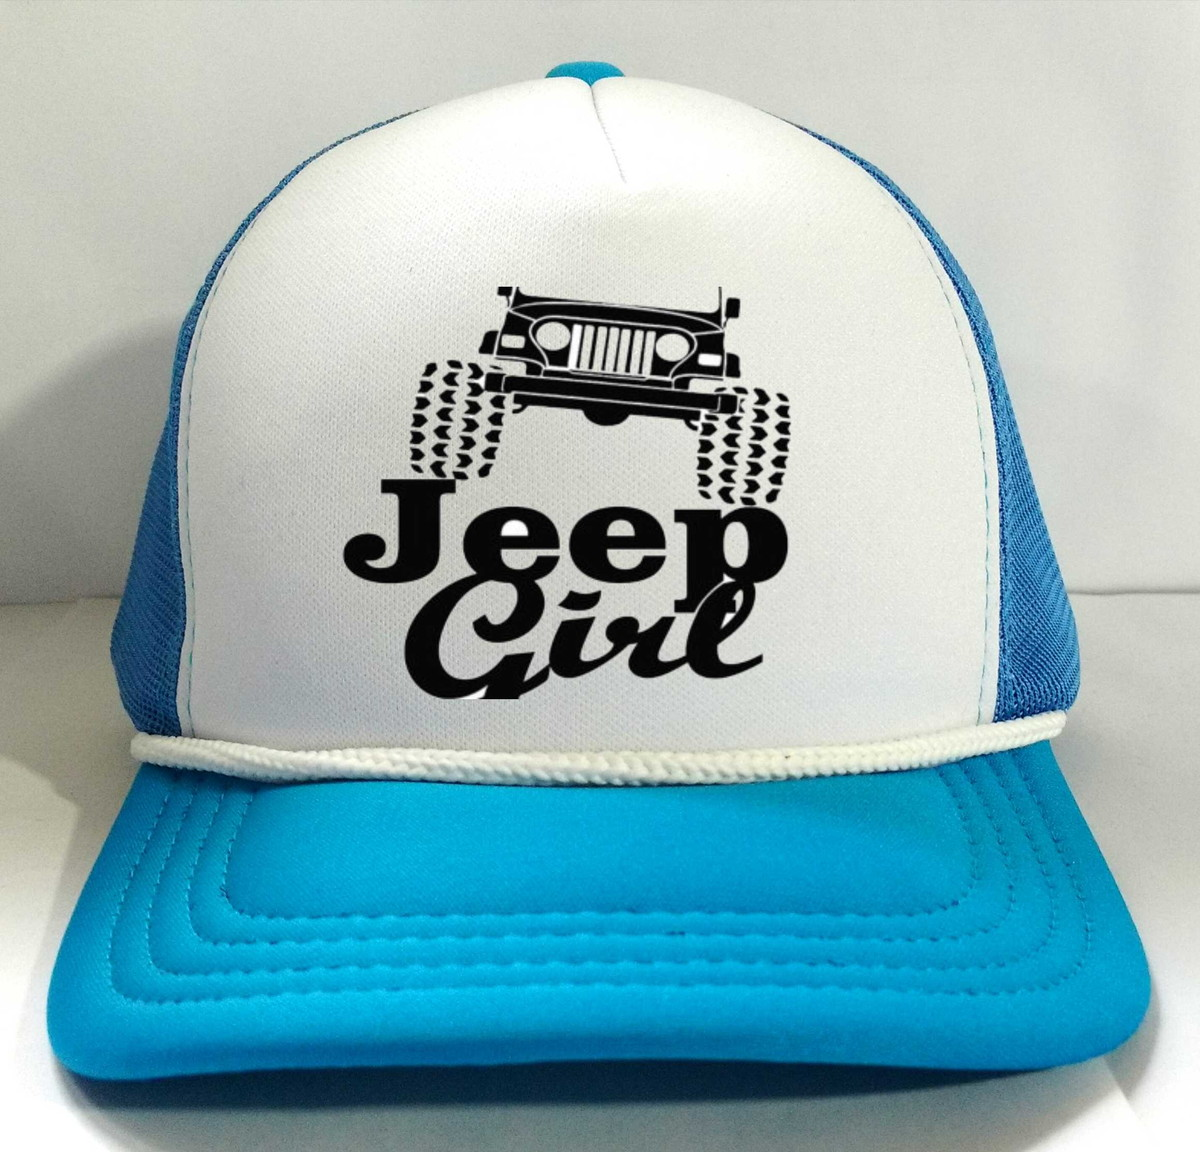 9ca913808431c Boné Trucker Jeep Girl Trilha Radical no Elo7